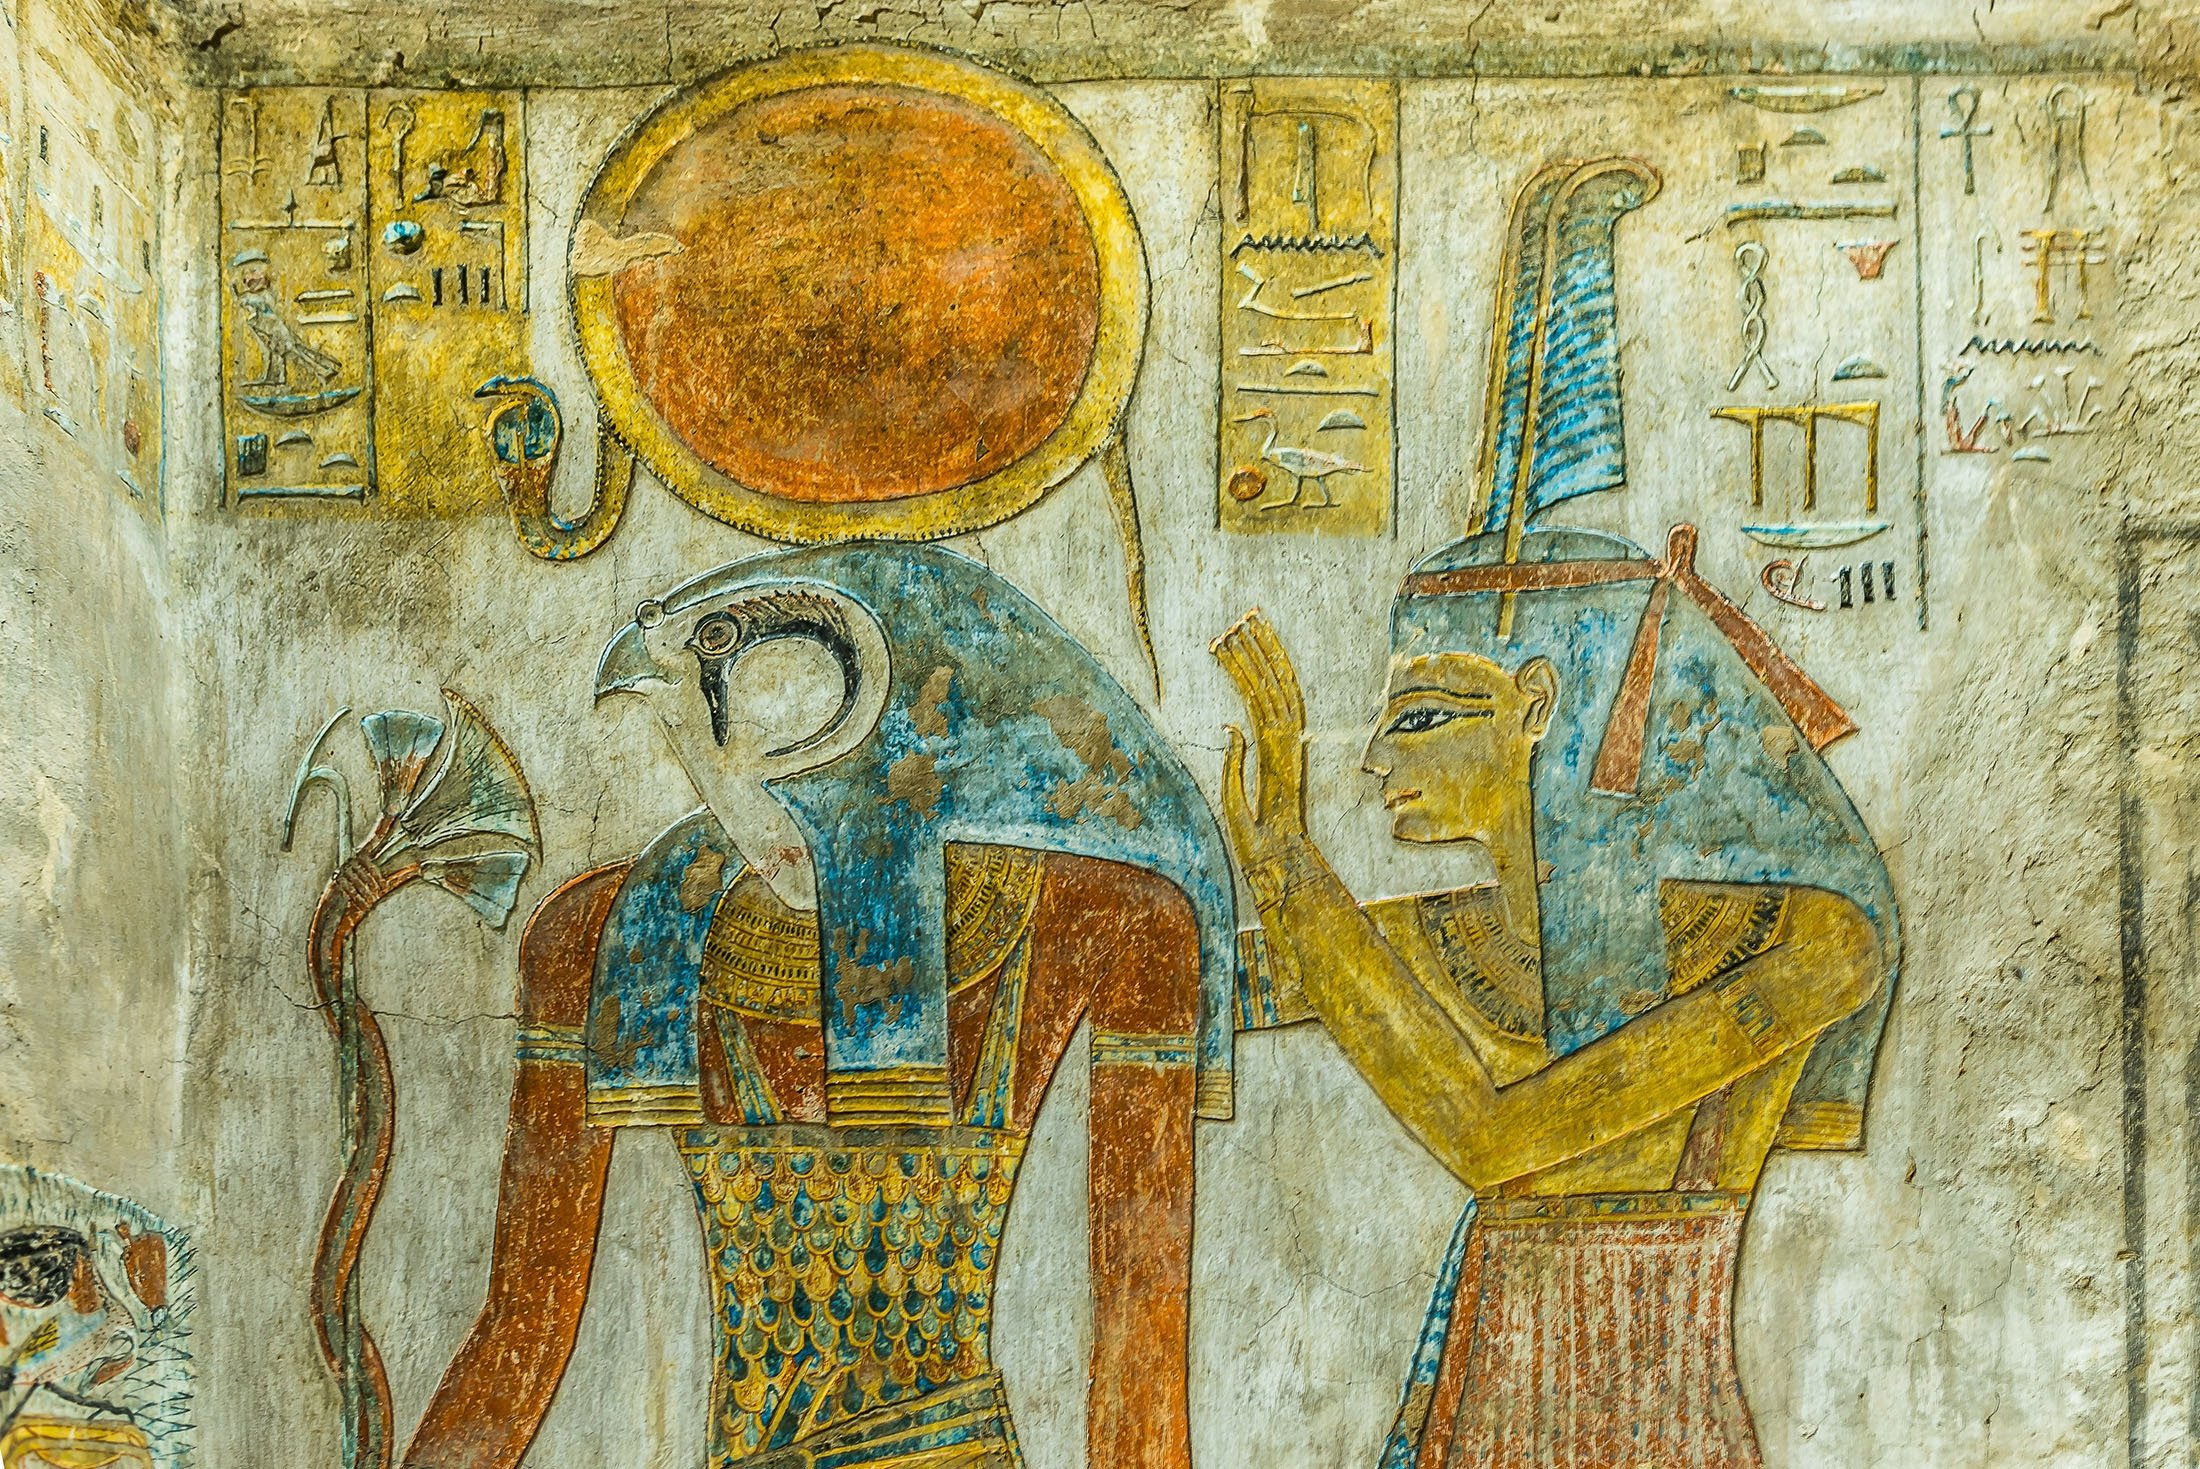 The paintings of Egyptian god Ra and Maat can be seen in the tombKV 14,the tomb of Twosret and Setnakhte in the Valley of the Kings, Luxor, Egypt, Oct.21, 2018. (Shutterstock Photo)